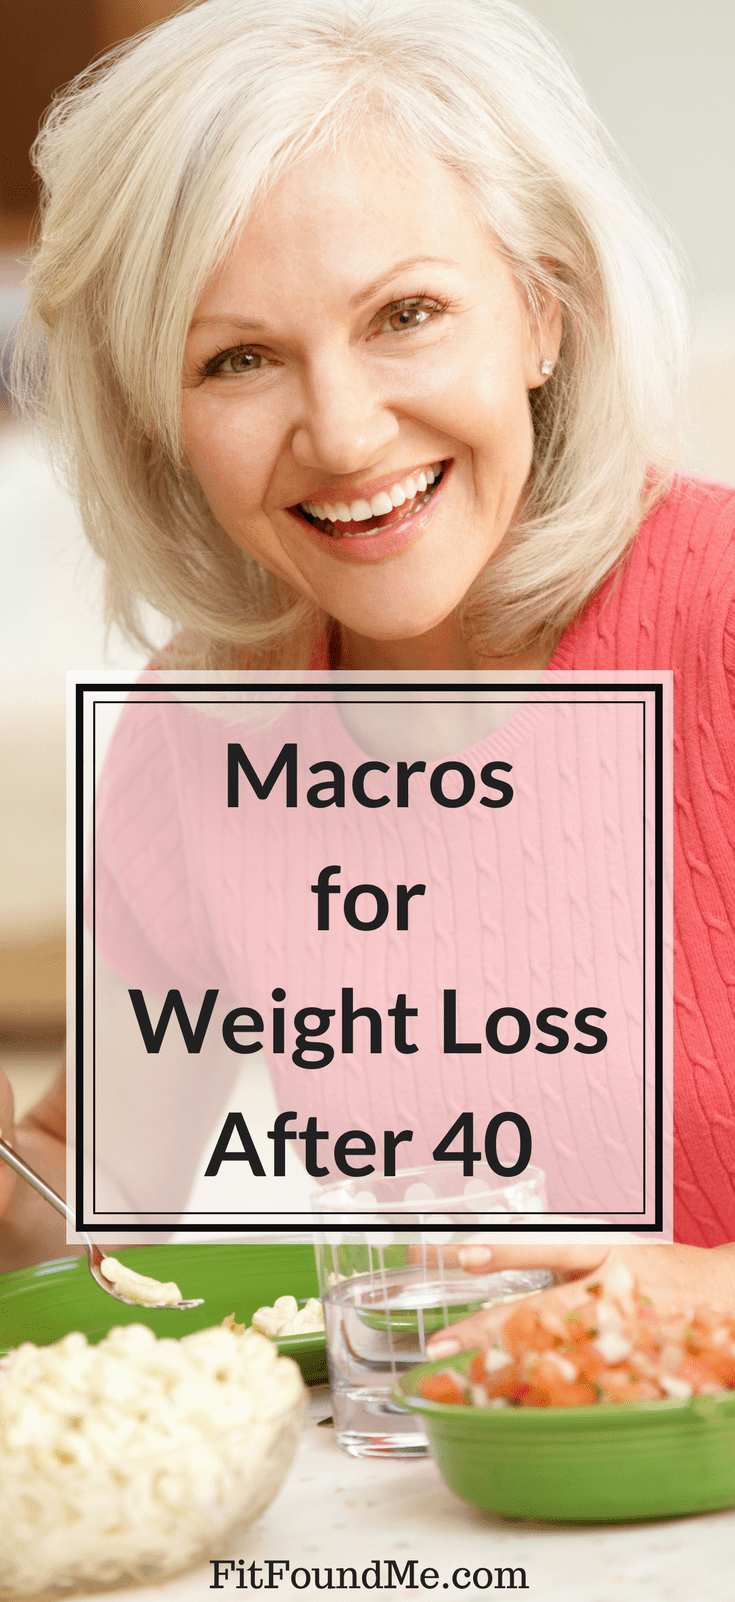 woman happily eating while counting macros losing weight